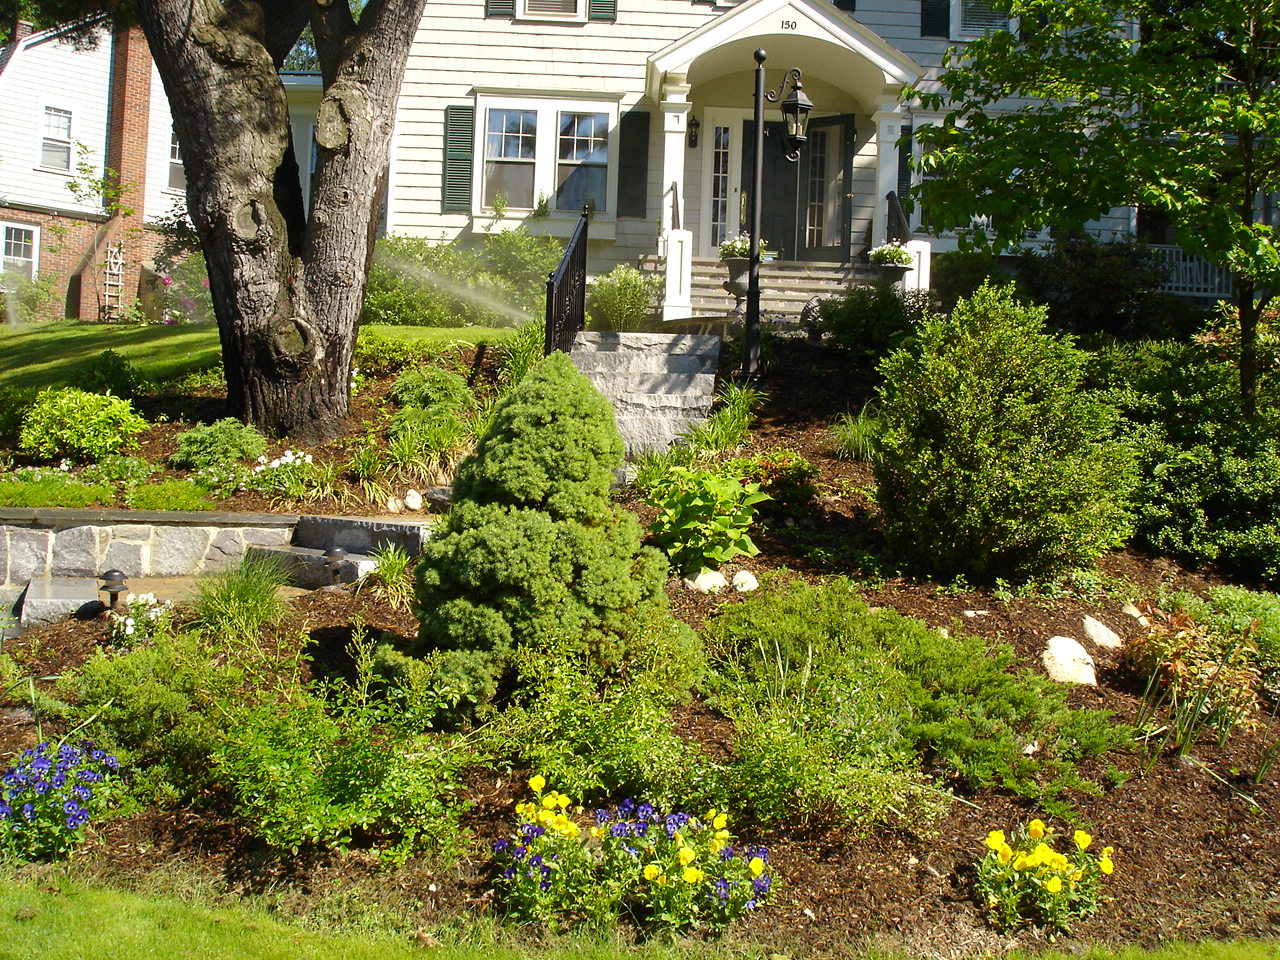 Upgrade your landscape with new plants and shrubs with our landscape experts.